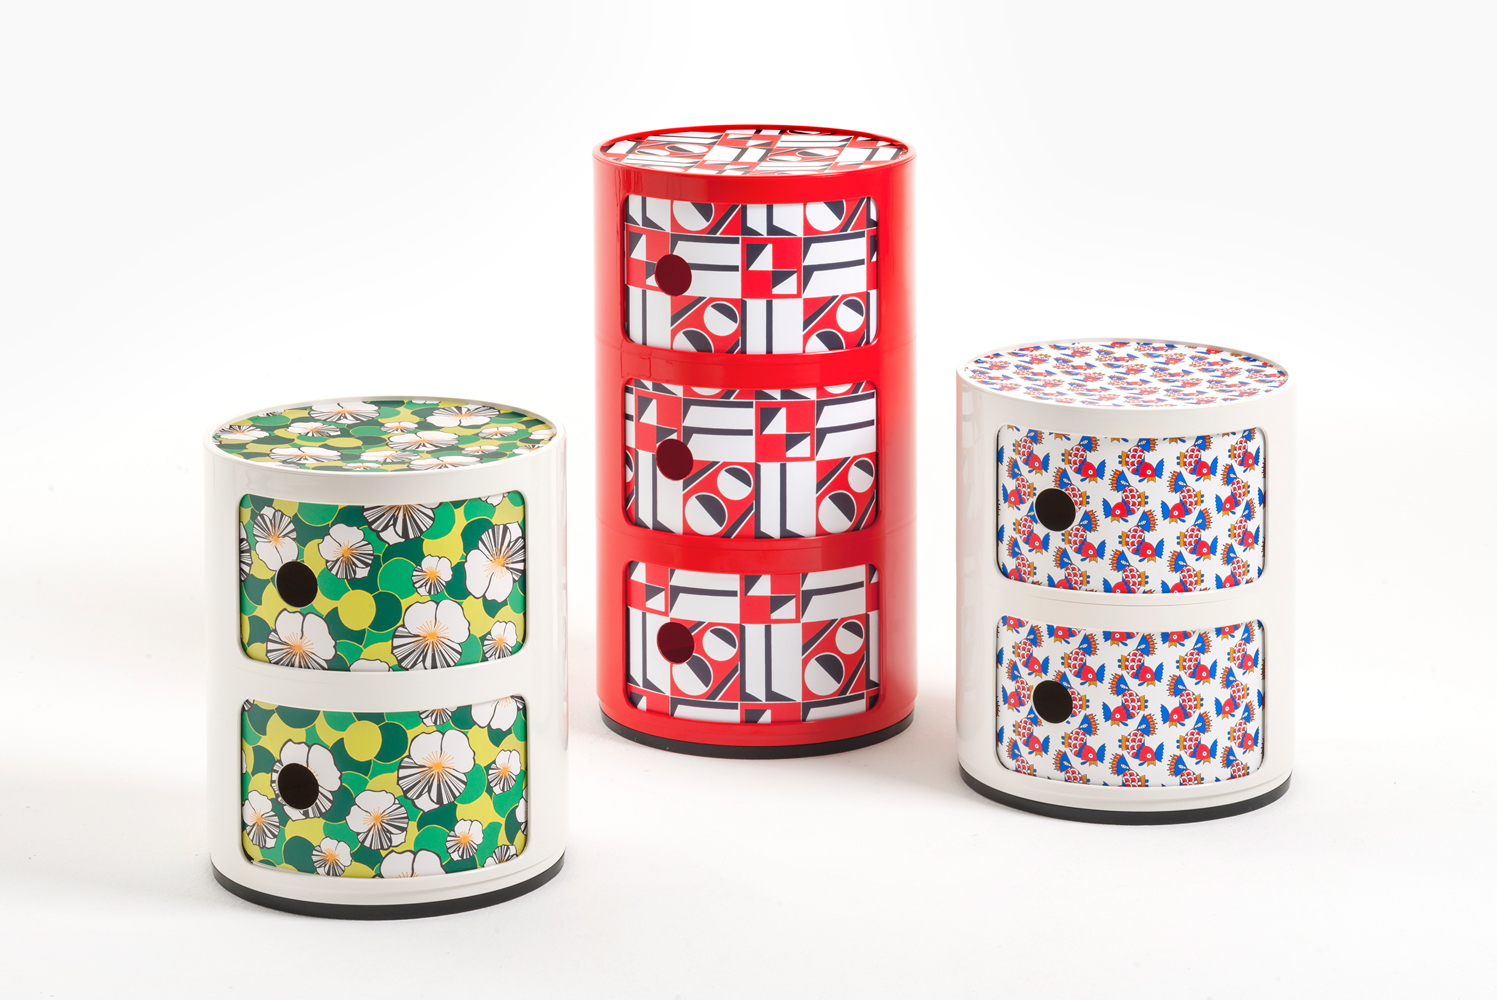 The Componibili by Kartell founder Anna Castelli Ferrieri is relaunched as a smaller two-story piece printed in Ninfea, Geometrica and Galletti prints. The Galletti vintage pattern originally designed in the 1970s was sourced from the Italian archives of Mantero Seta, one of Lake Como's oldest silk manufacturers.